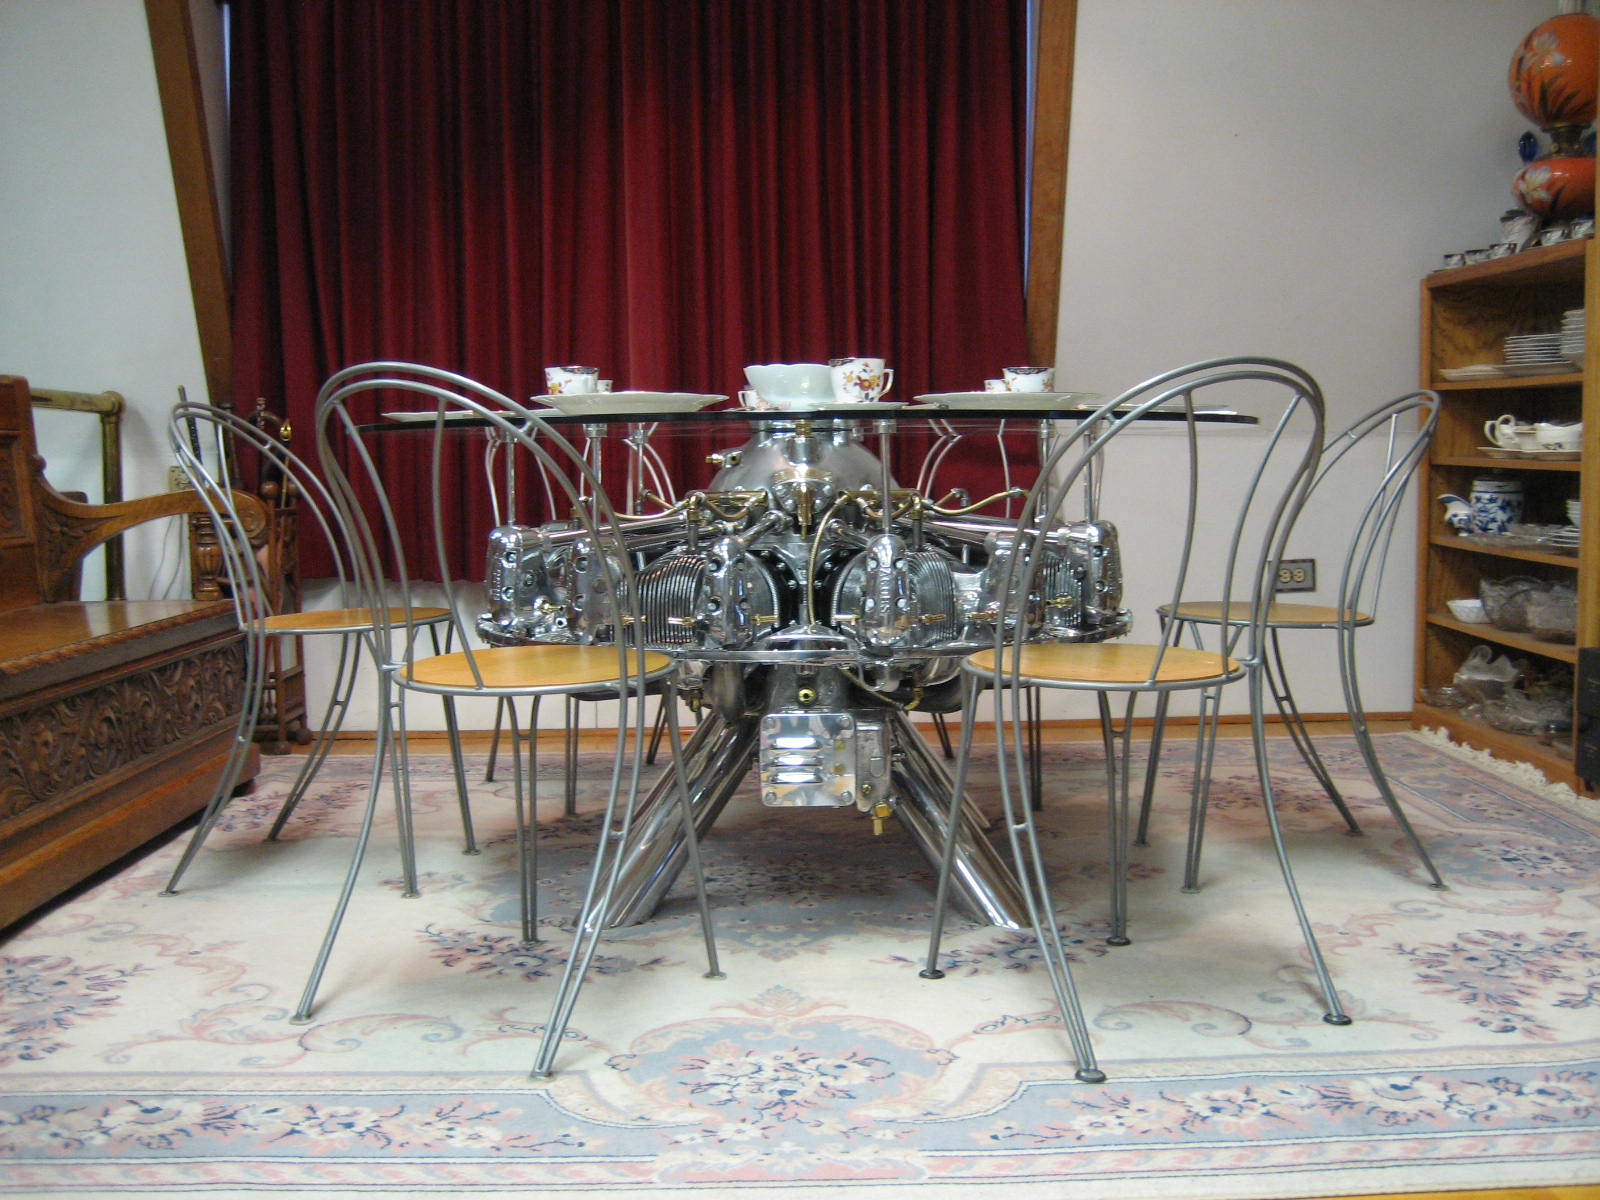 World War II Jacob's 1943 Bomber Training Engine Converted to Dining Room Table